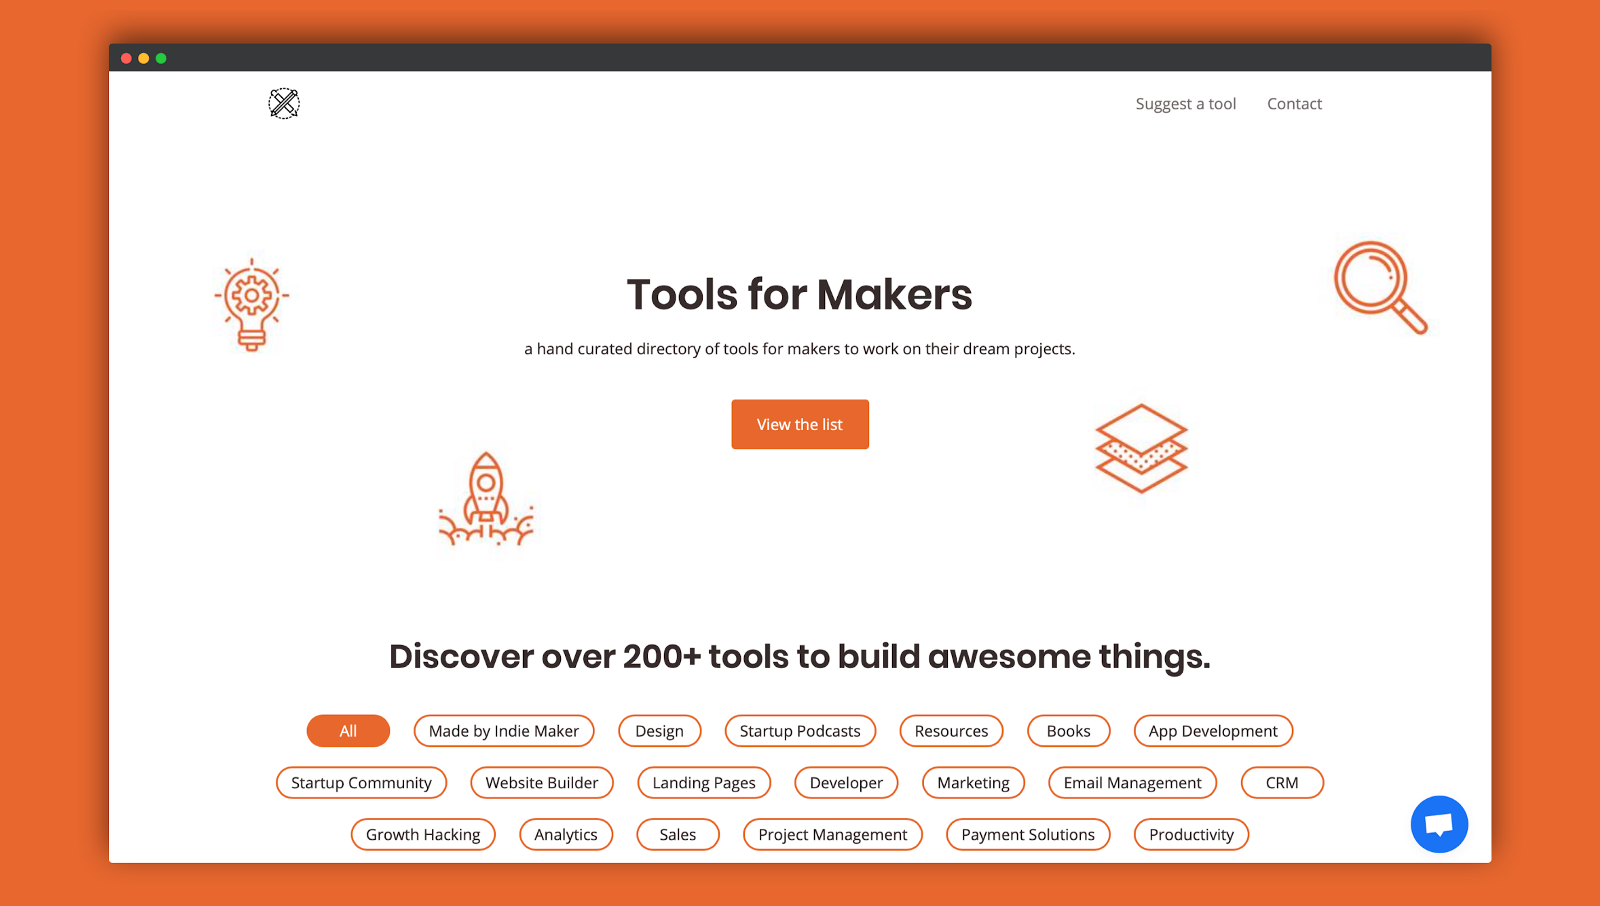 /tools-for-makers-a-hand-curated-directory-of-tools-for-indie-makers-8f50d7fcb8 feature image